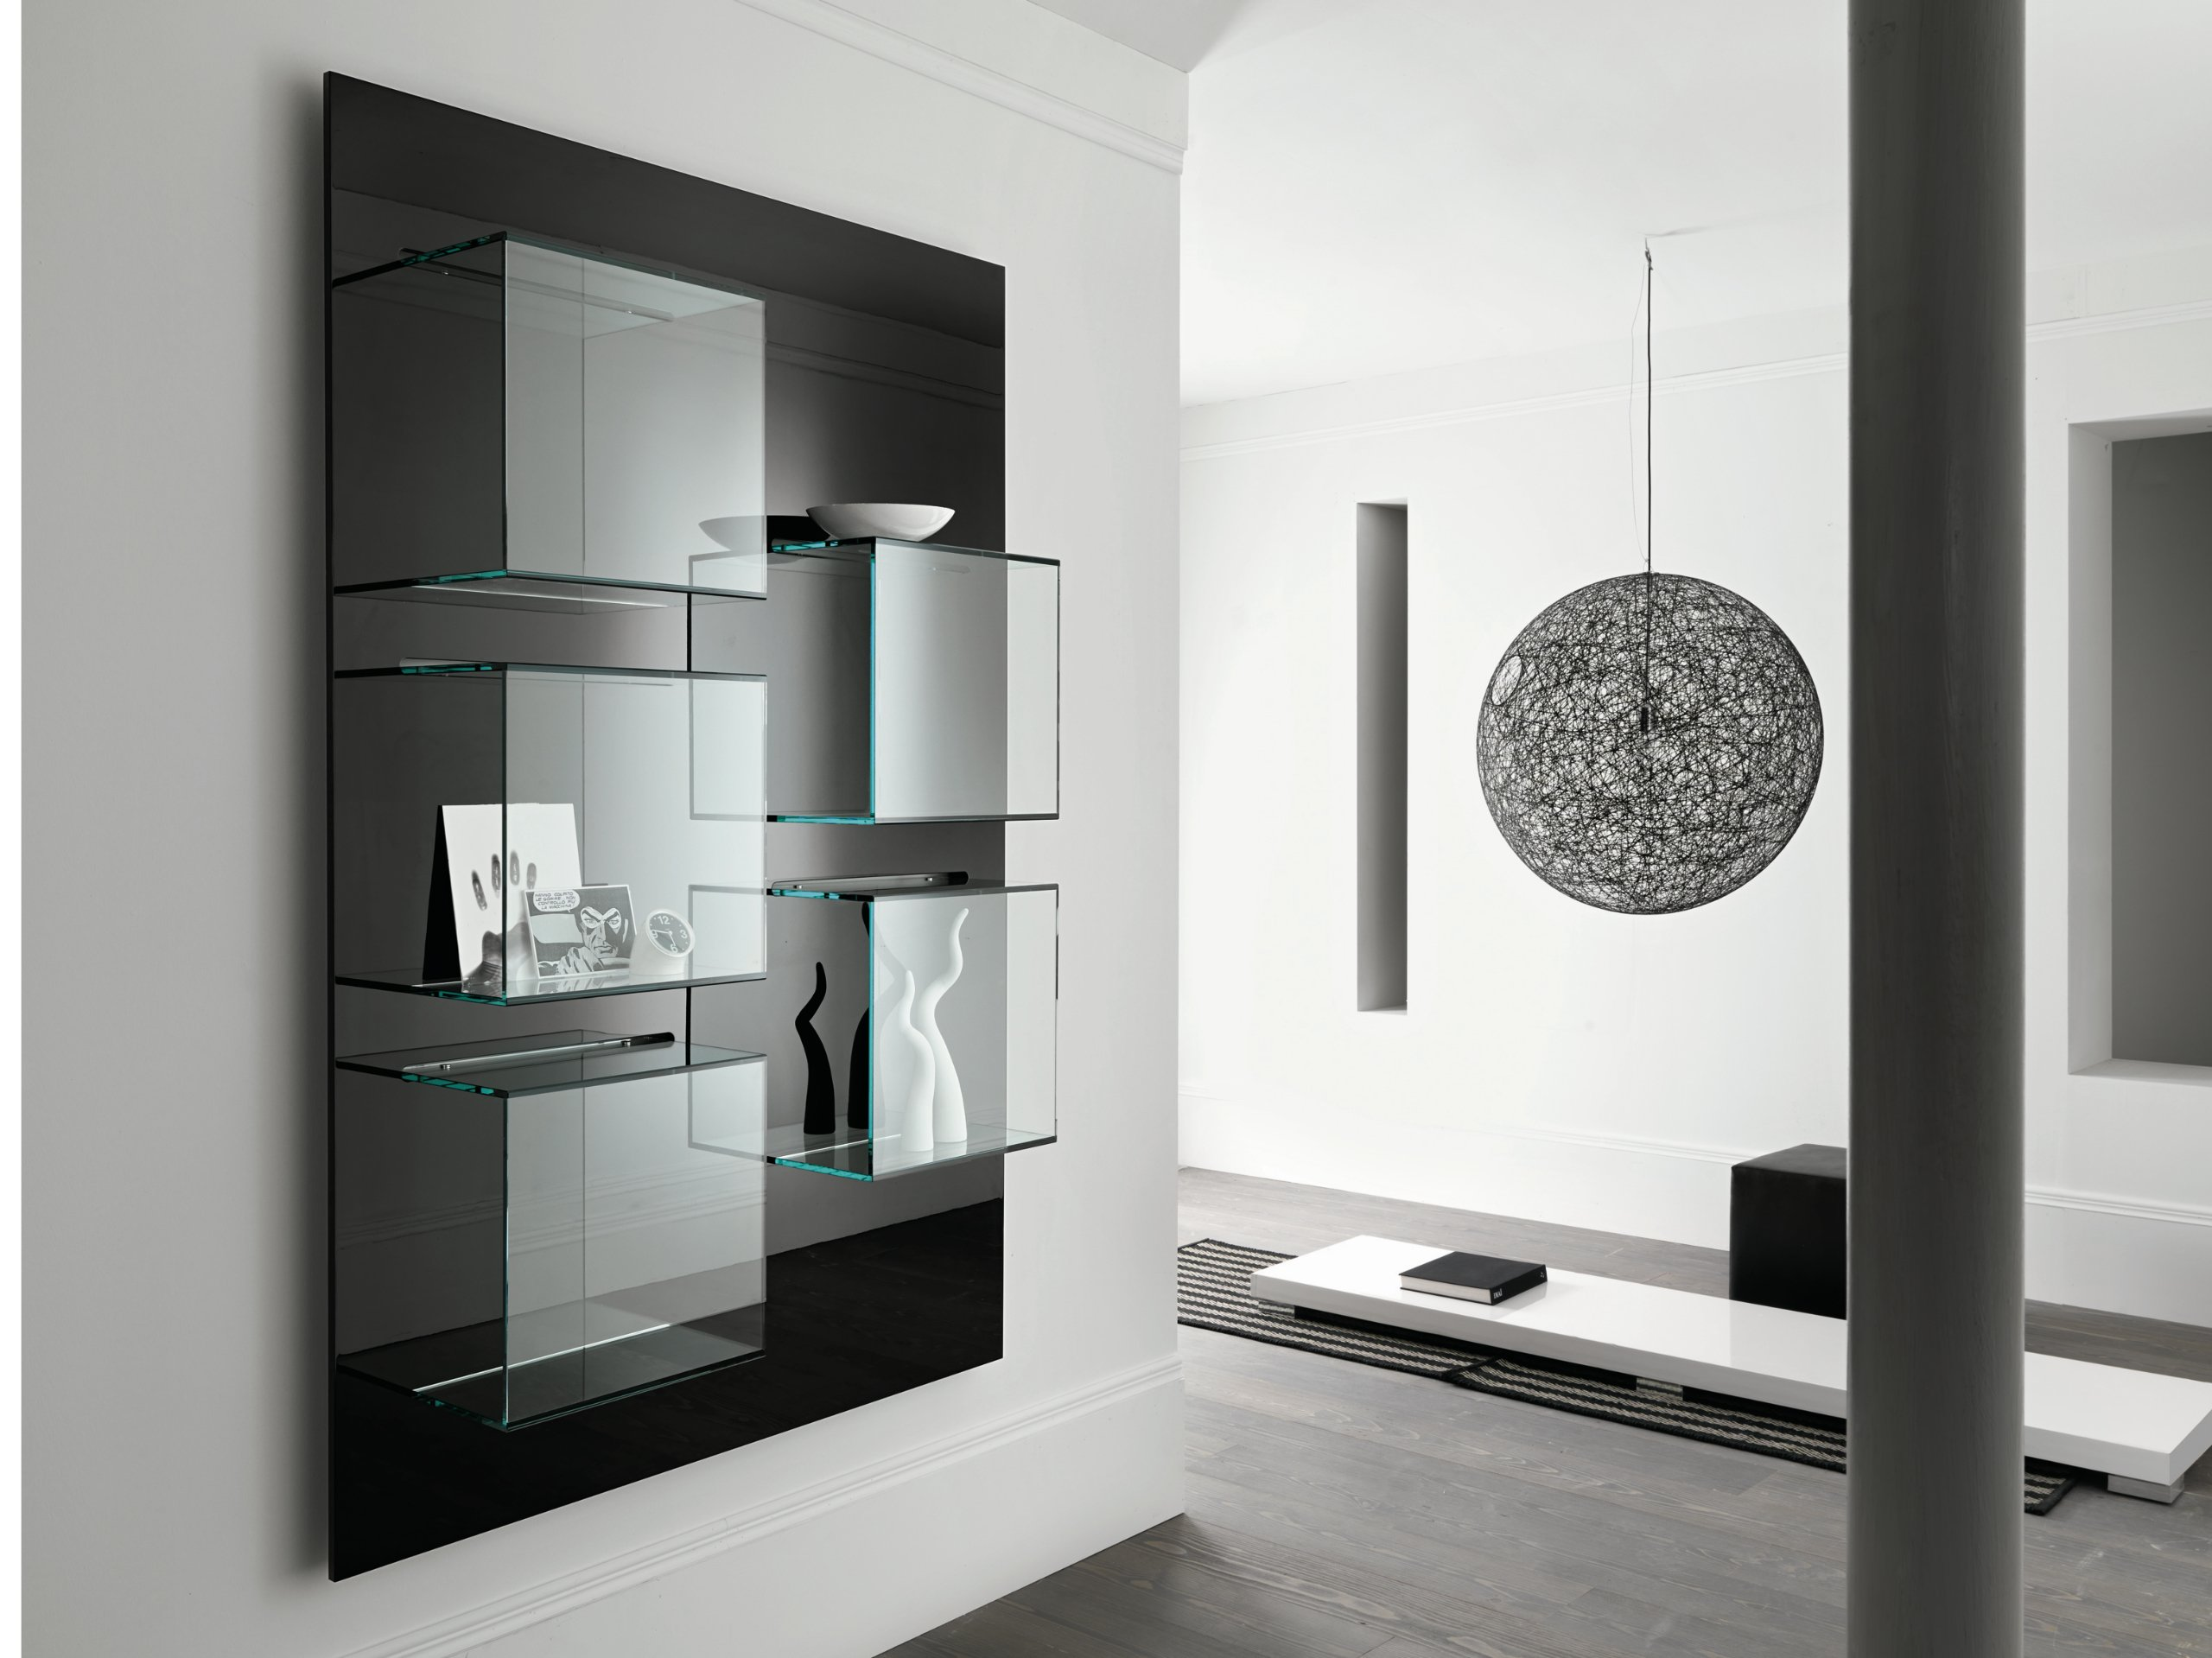 biblioth que murale en verre dazibao by t d tonelli. Black Bedroom Furniture Sets. Home Design Ideas